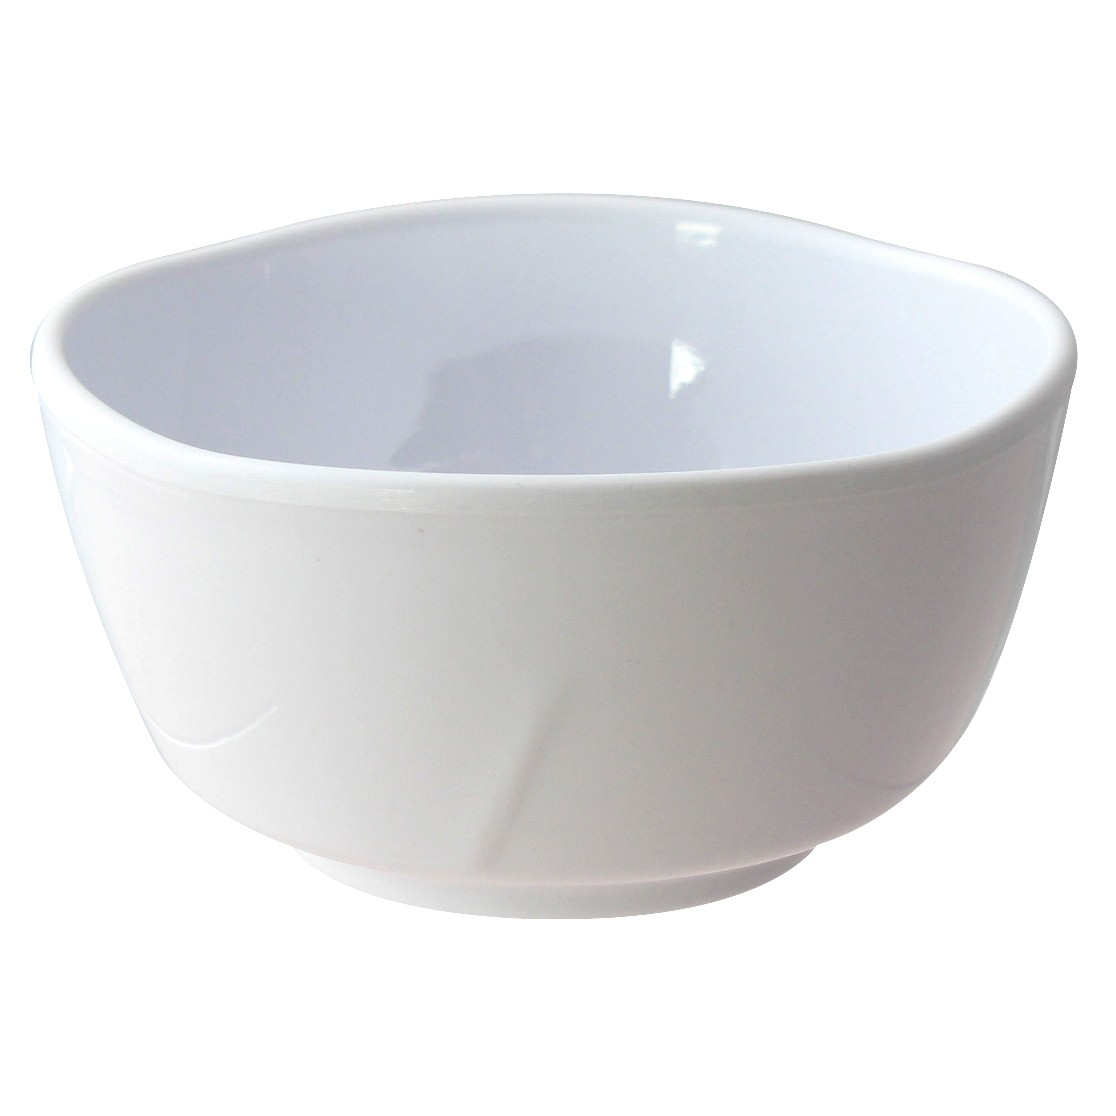 Thunder Group 39050WT Classic White Melamine Bowl, 16 oz.